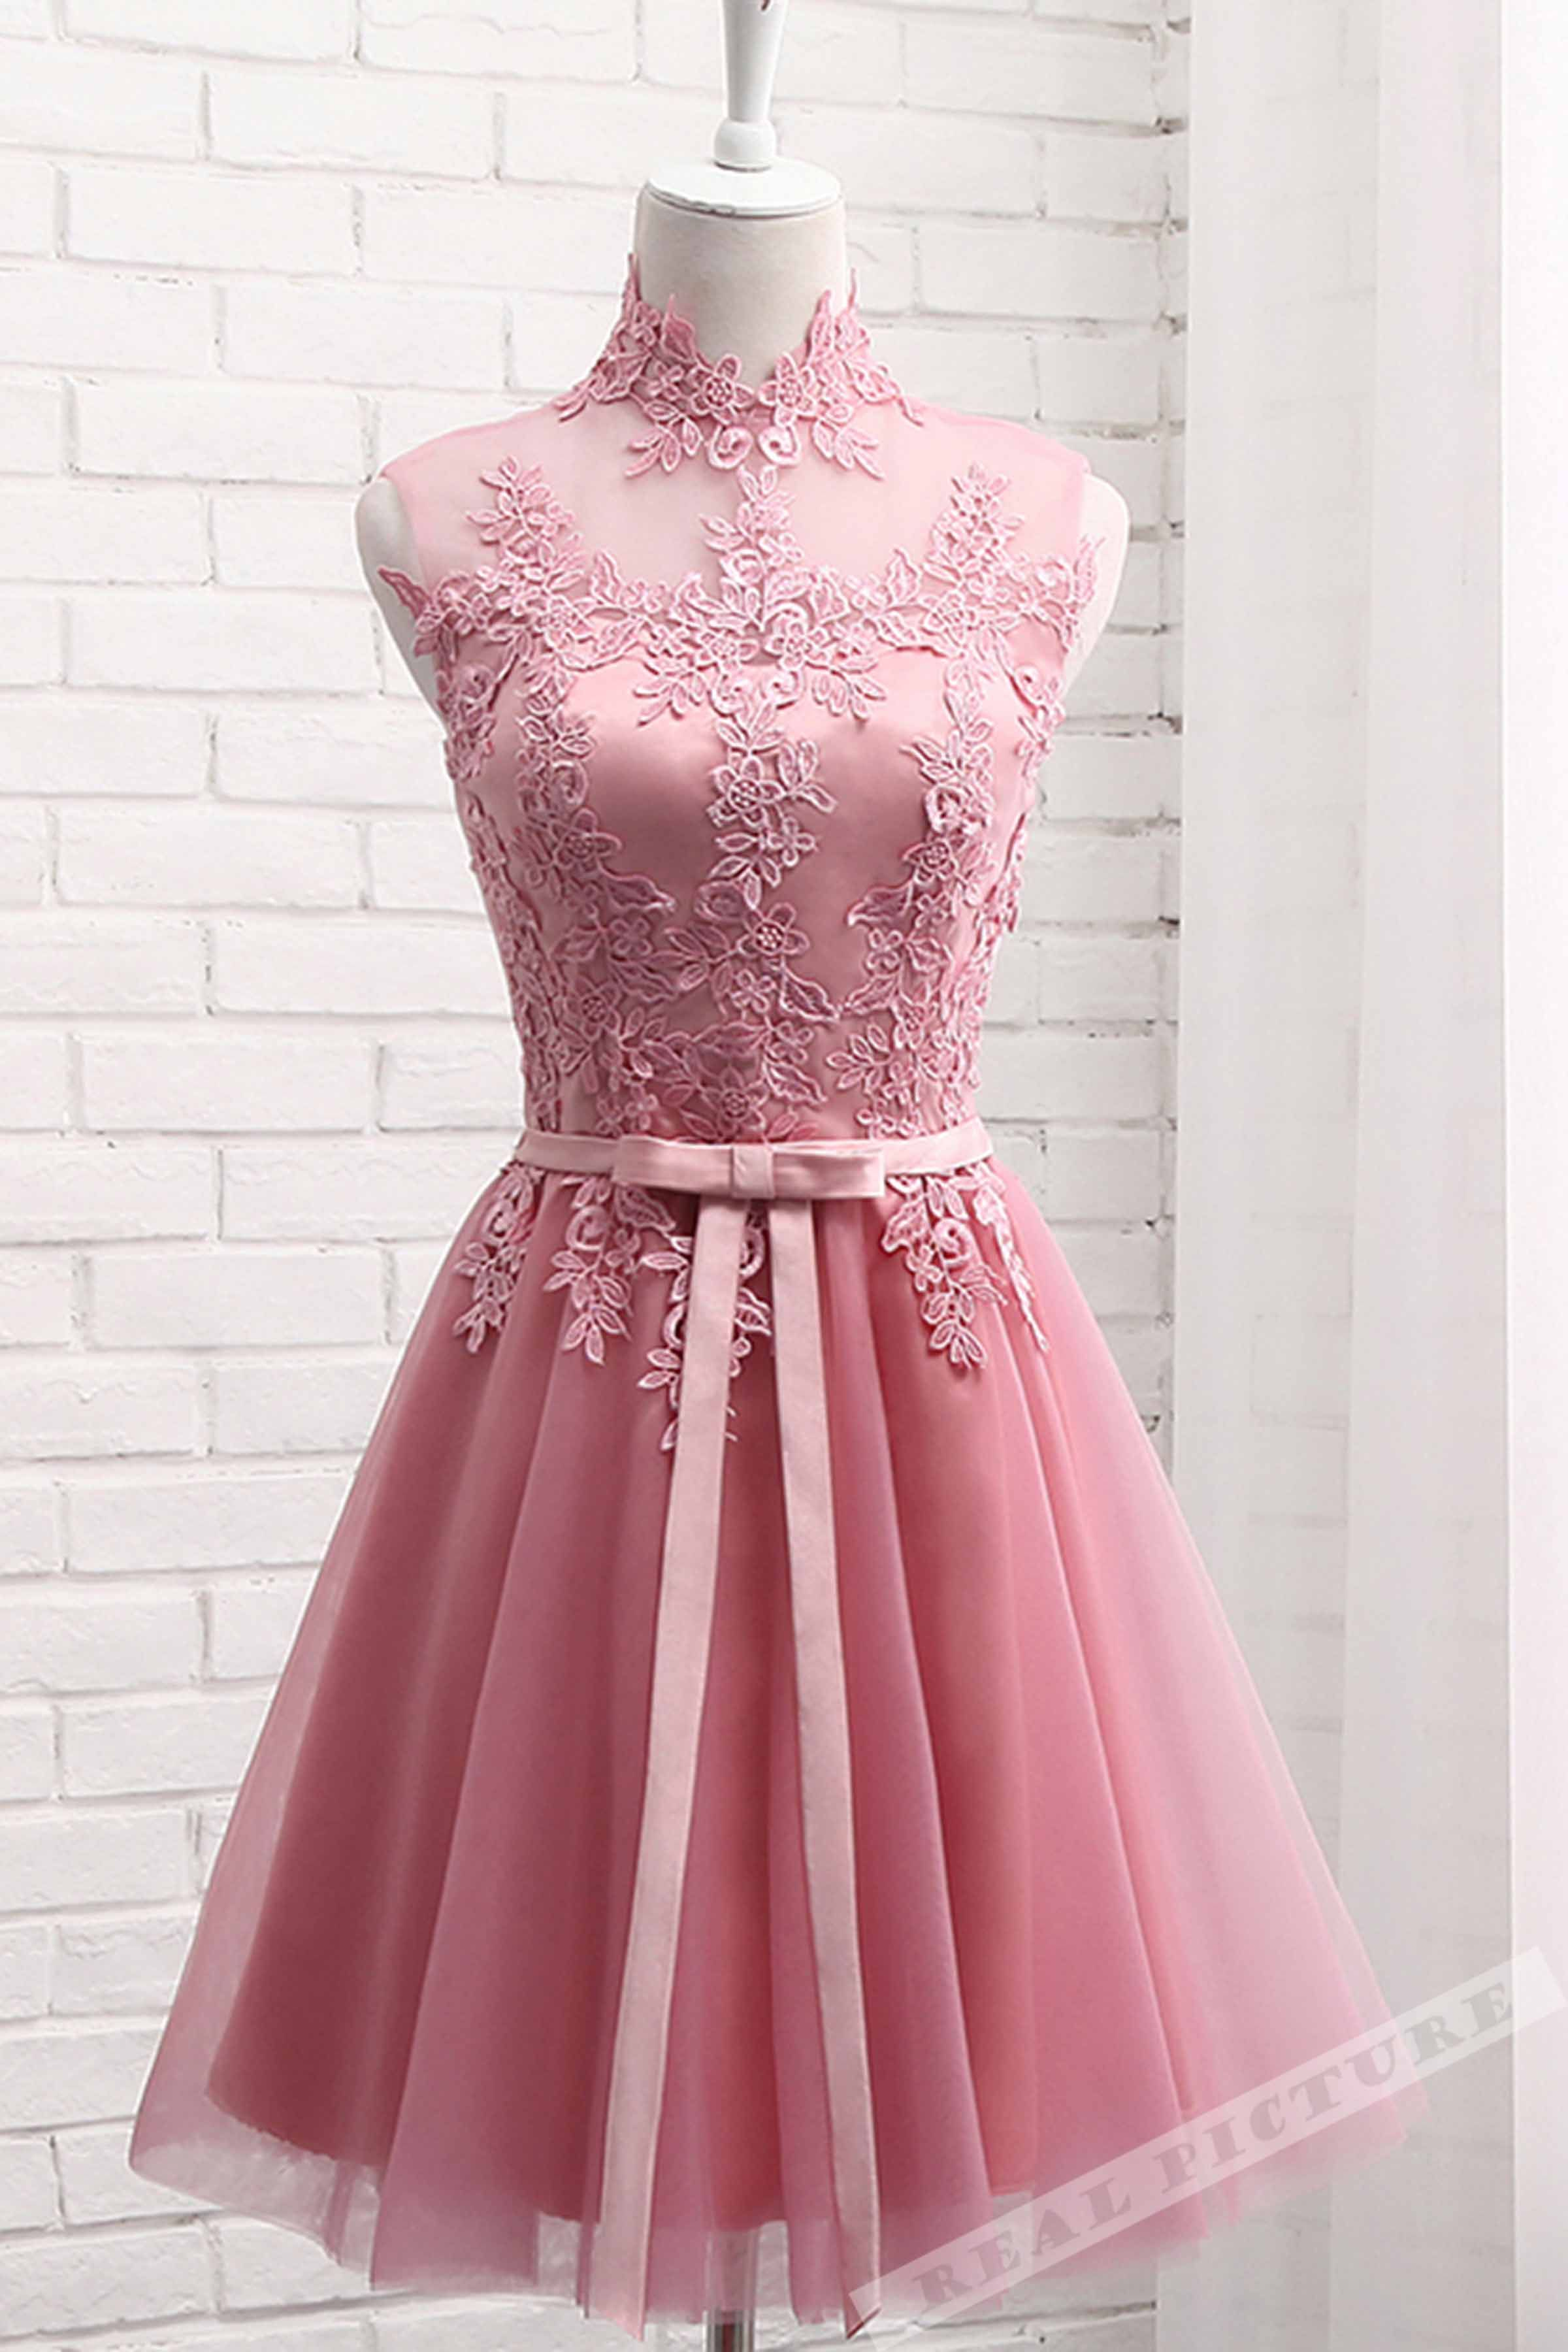 Pink tulle lace applique high neck seethrough short prom dresses